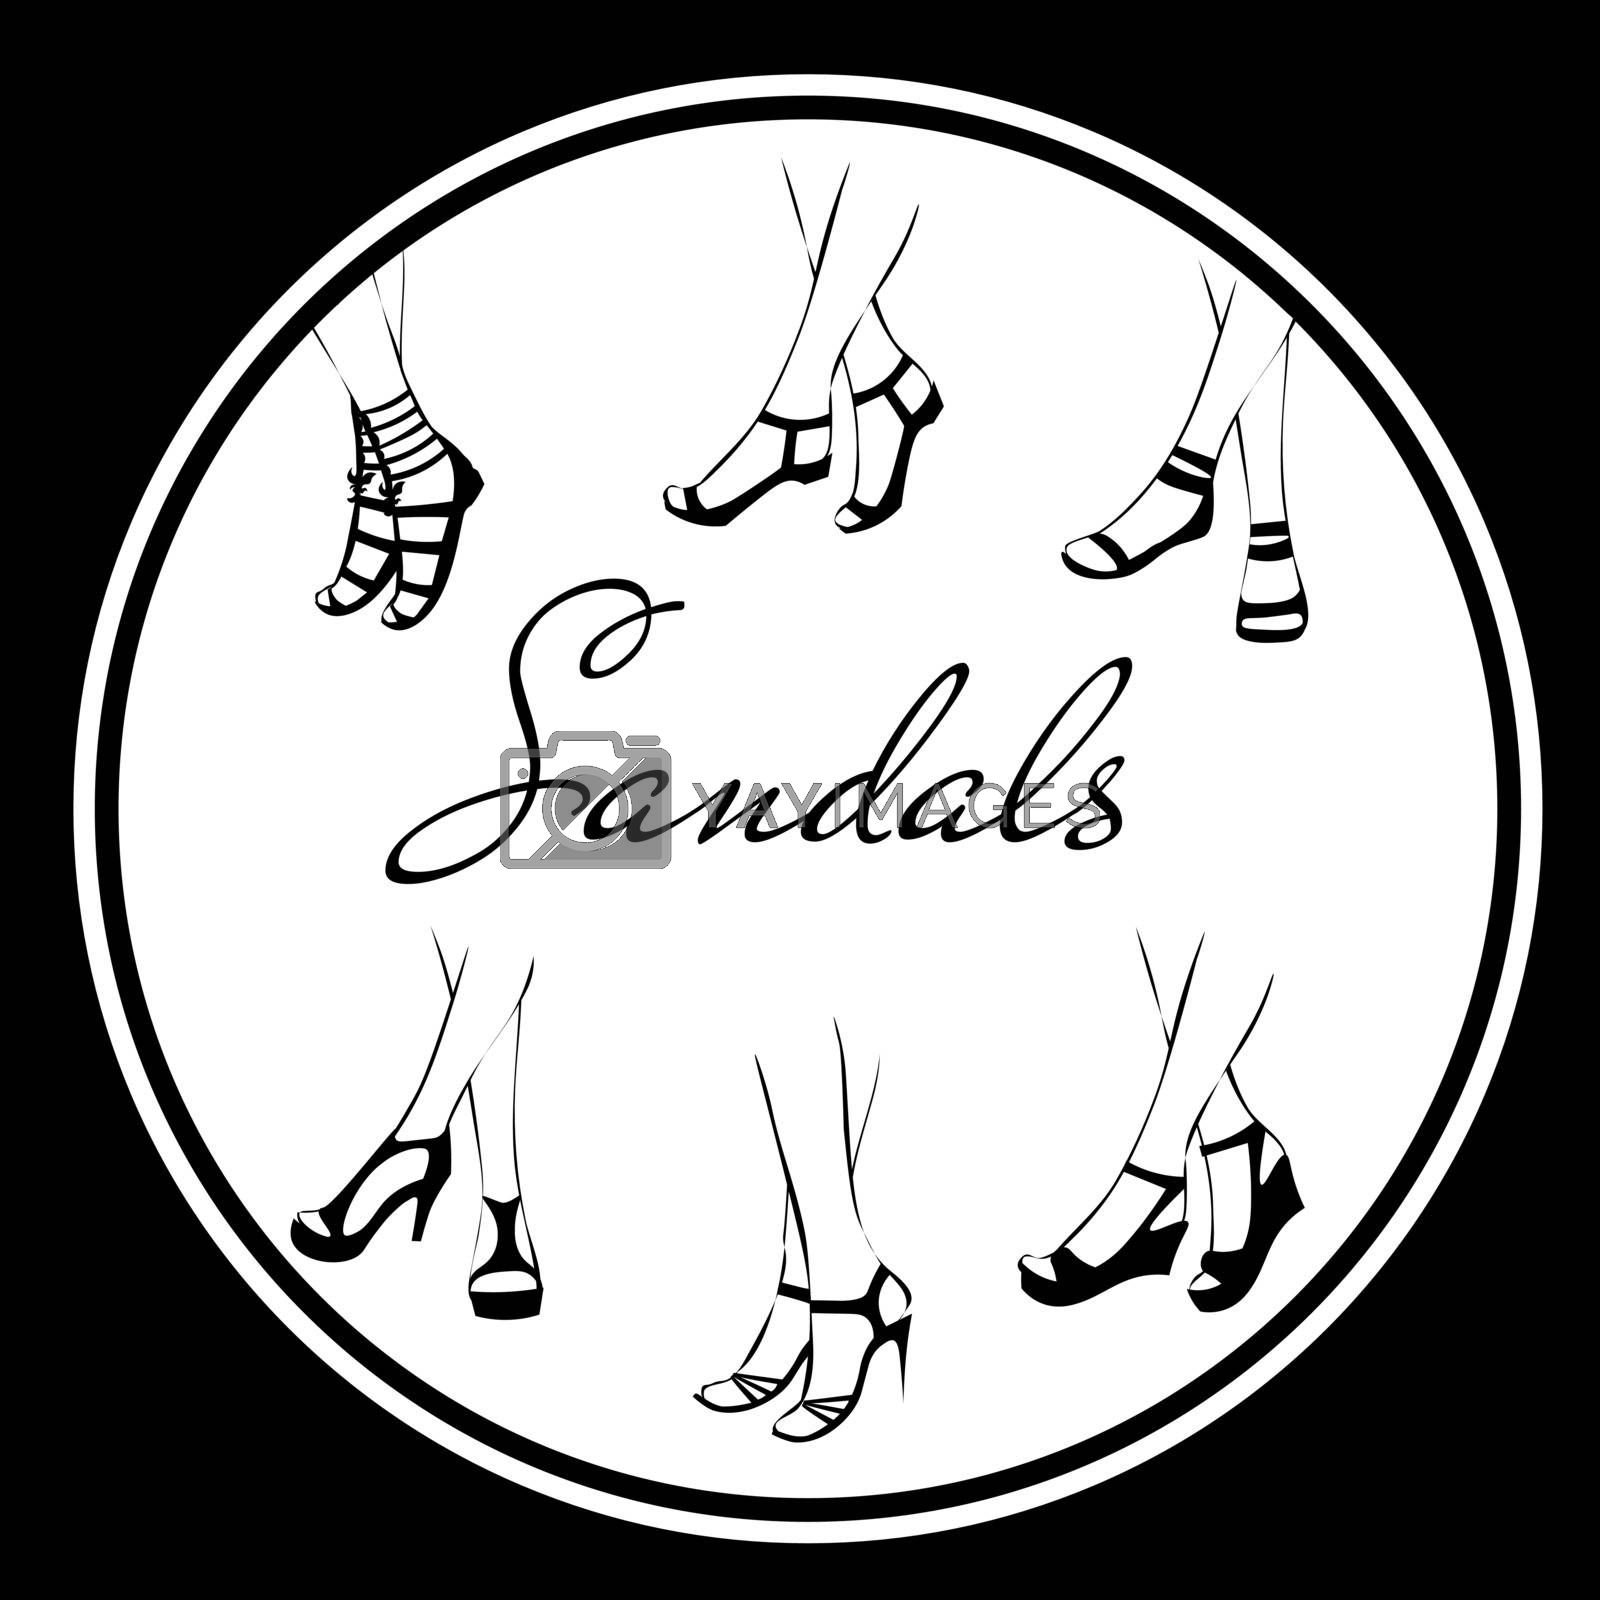 Six pairs of feminine sandals and shoes in black and white colors